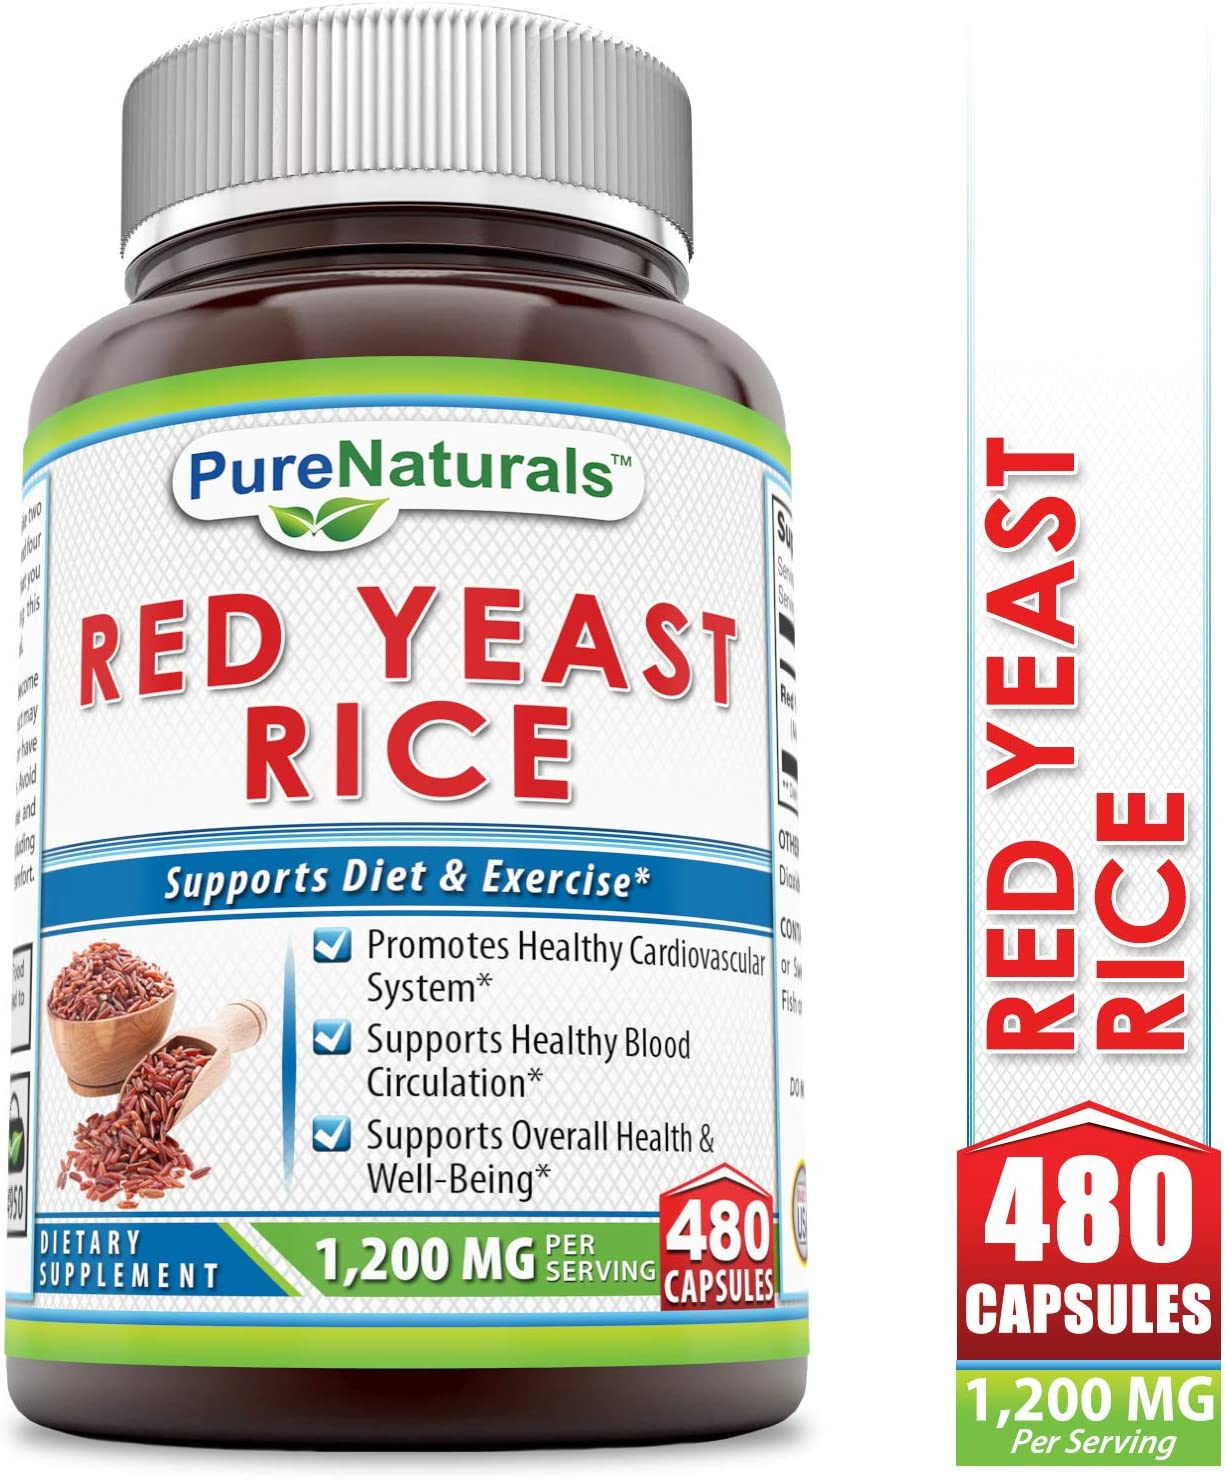 Pure Naturals Red Yeast Rice Dietary Supplement – 1200 mg of Best Quality Red Yeast Rice Powder Per Serving Supports Cardiovascular Health- 480 Capsules Per Bottle